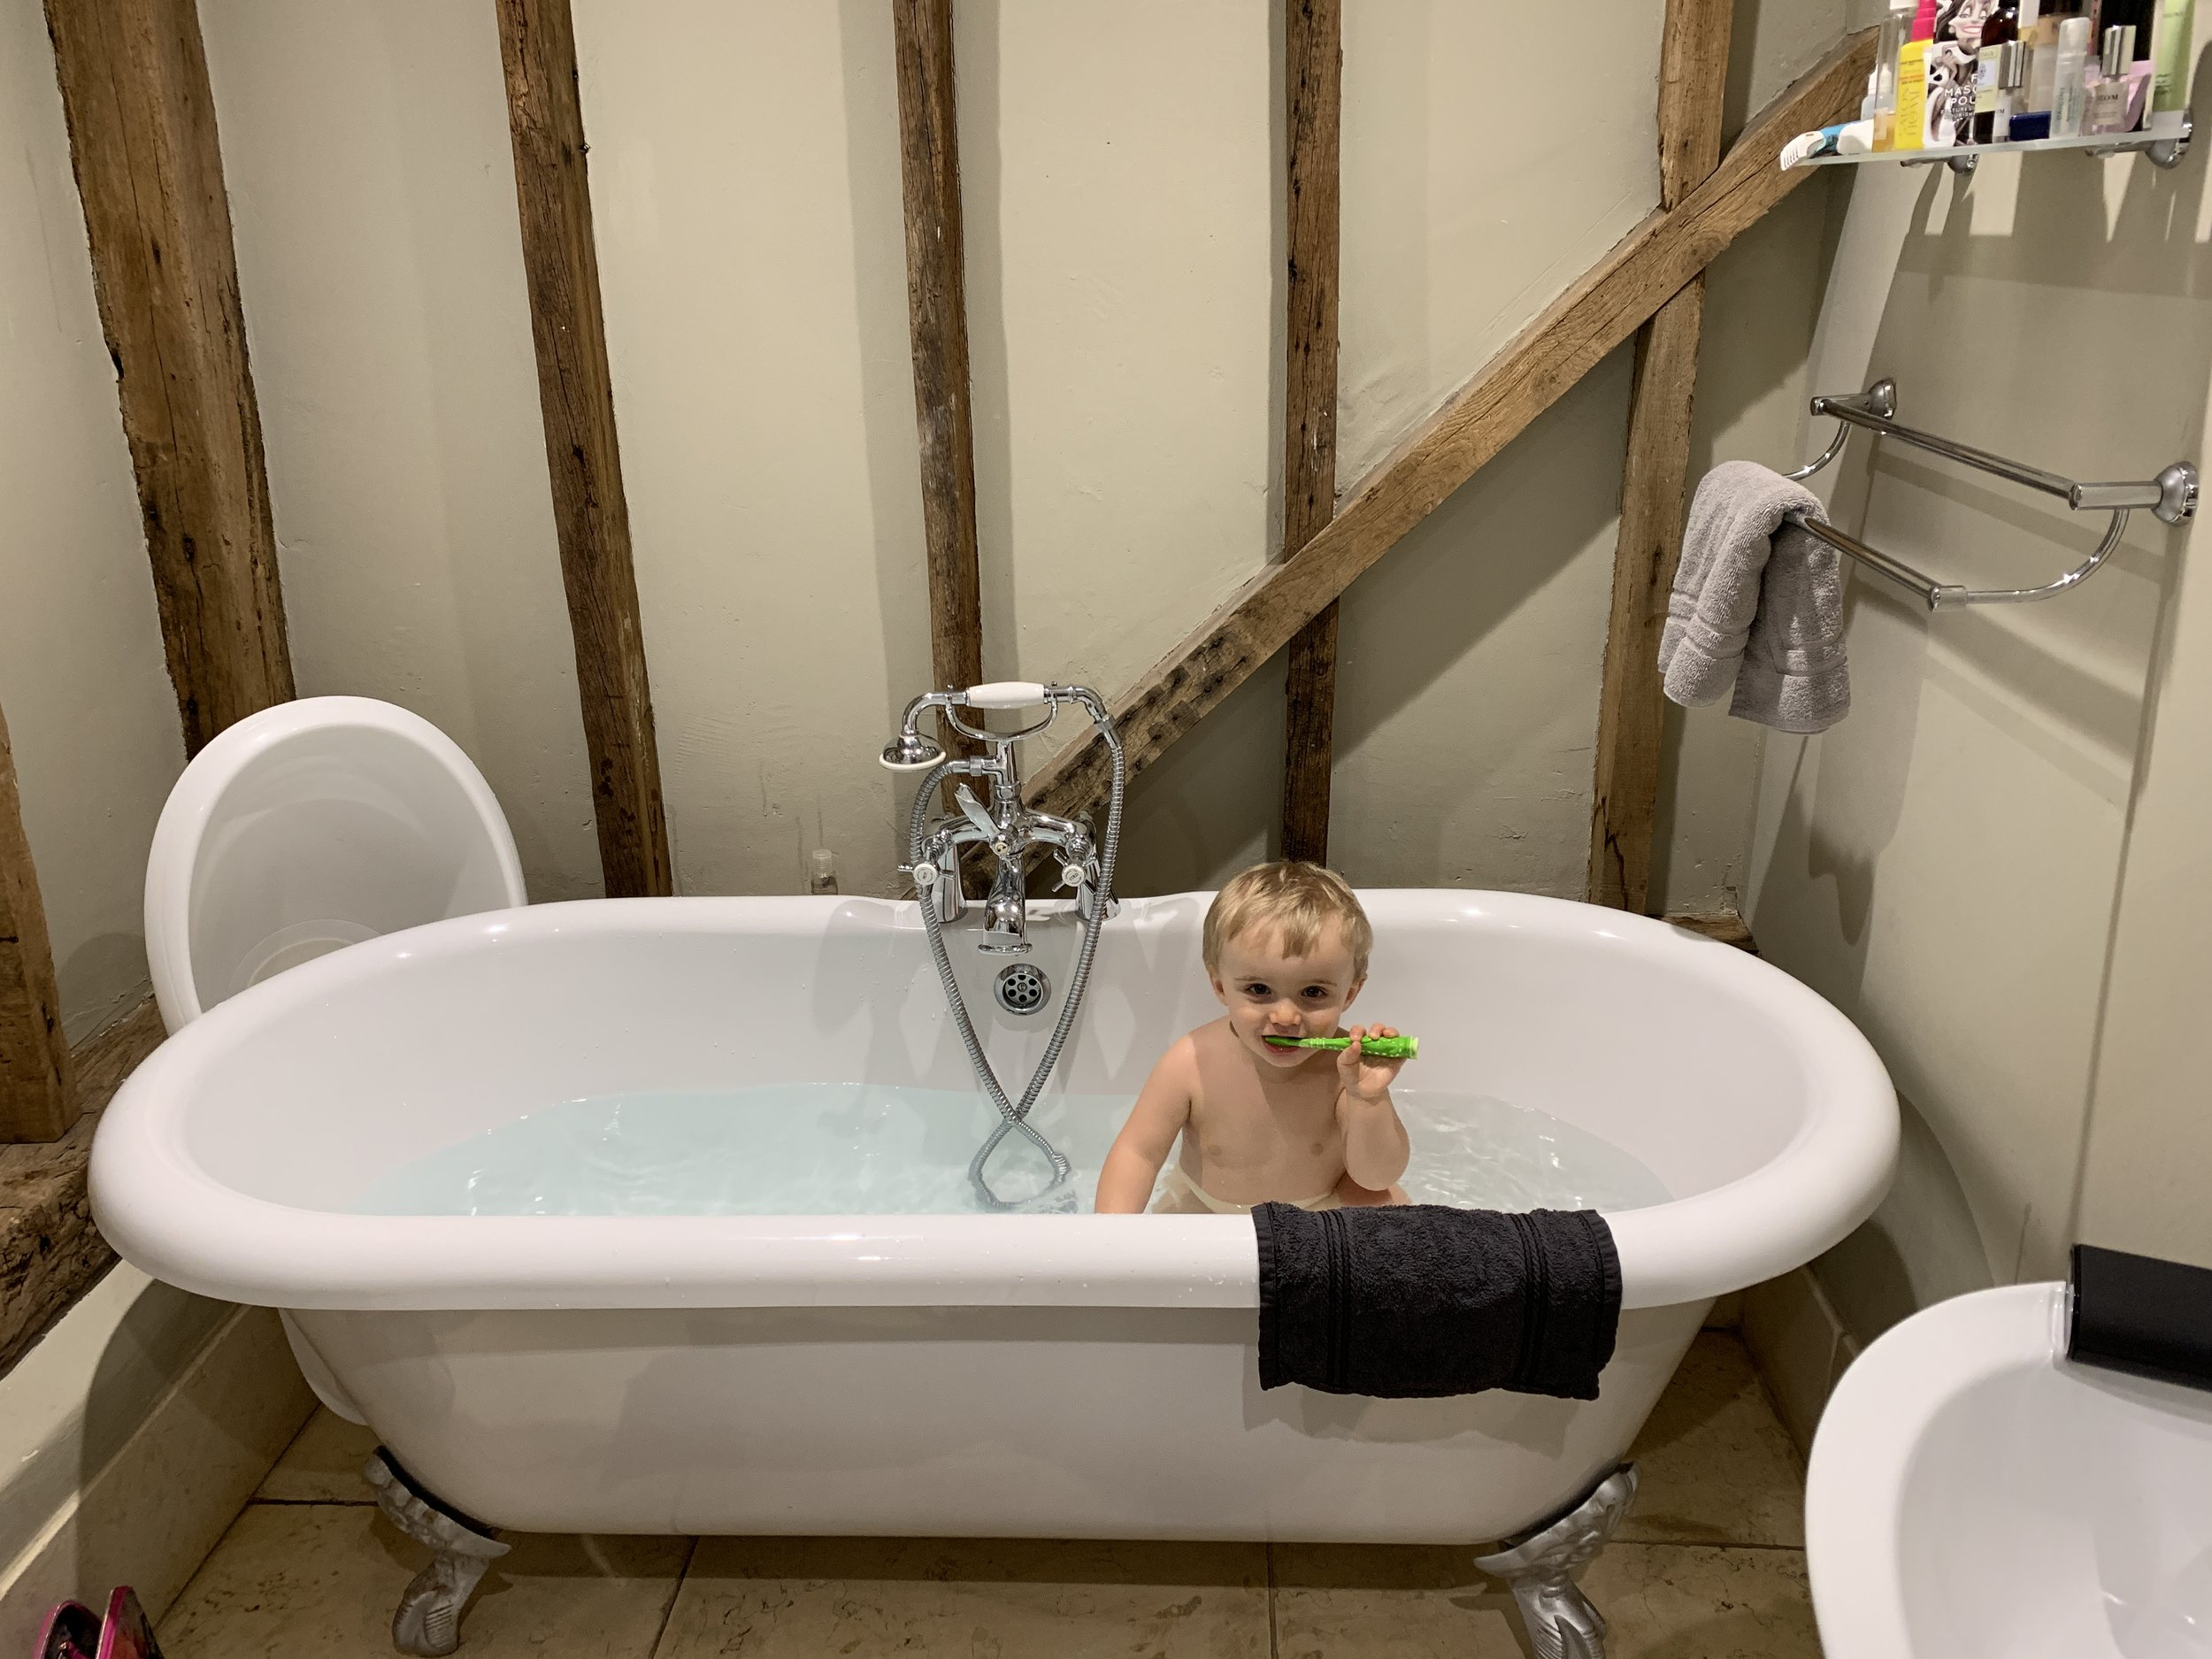 Leo in the freestanding bath- was lovely to have mornings and evenings together.